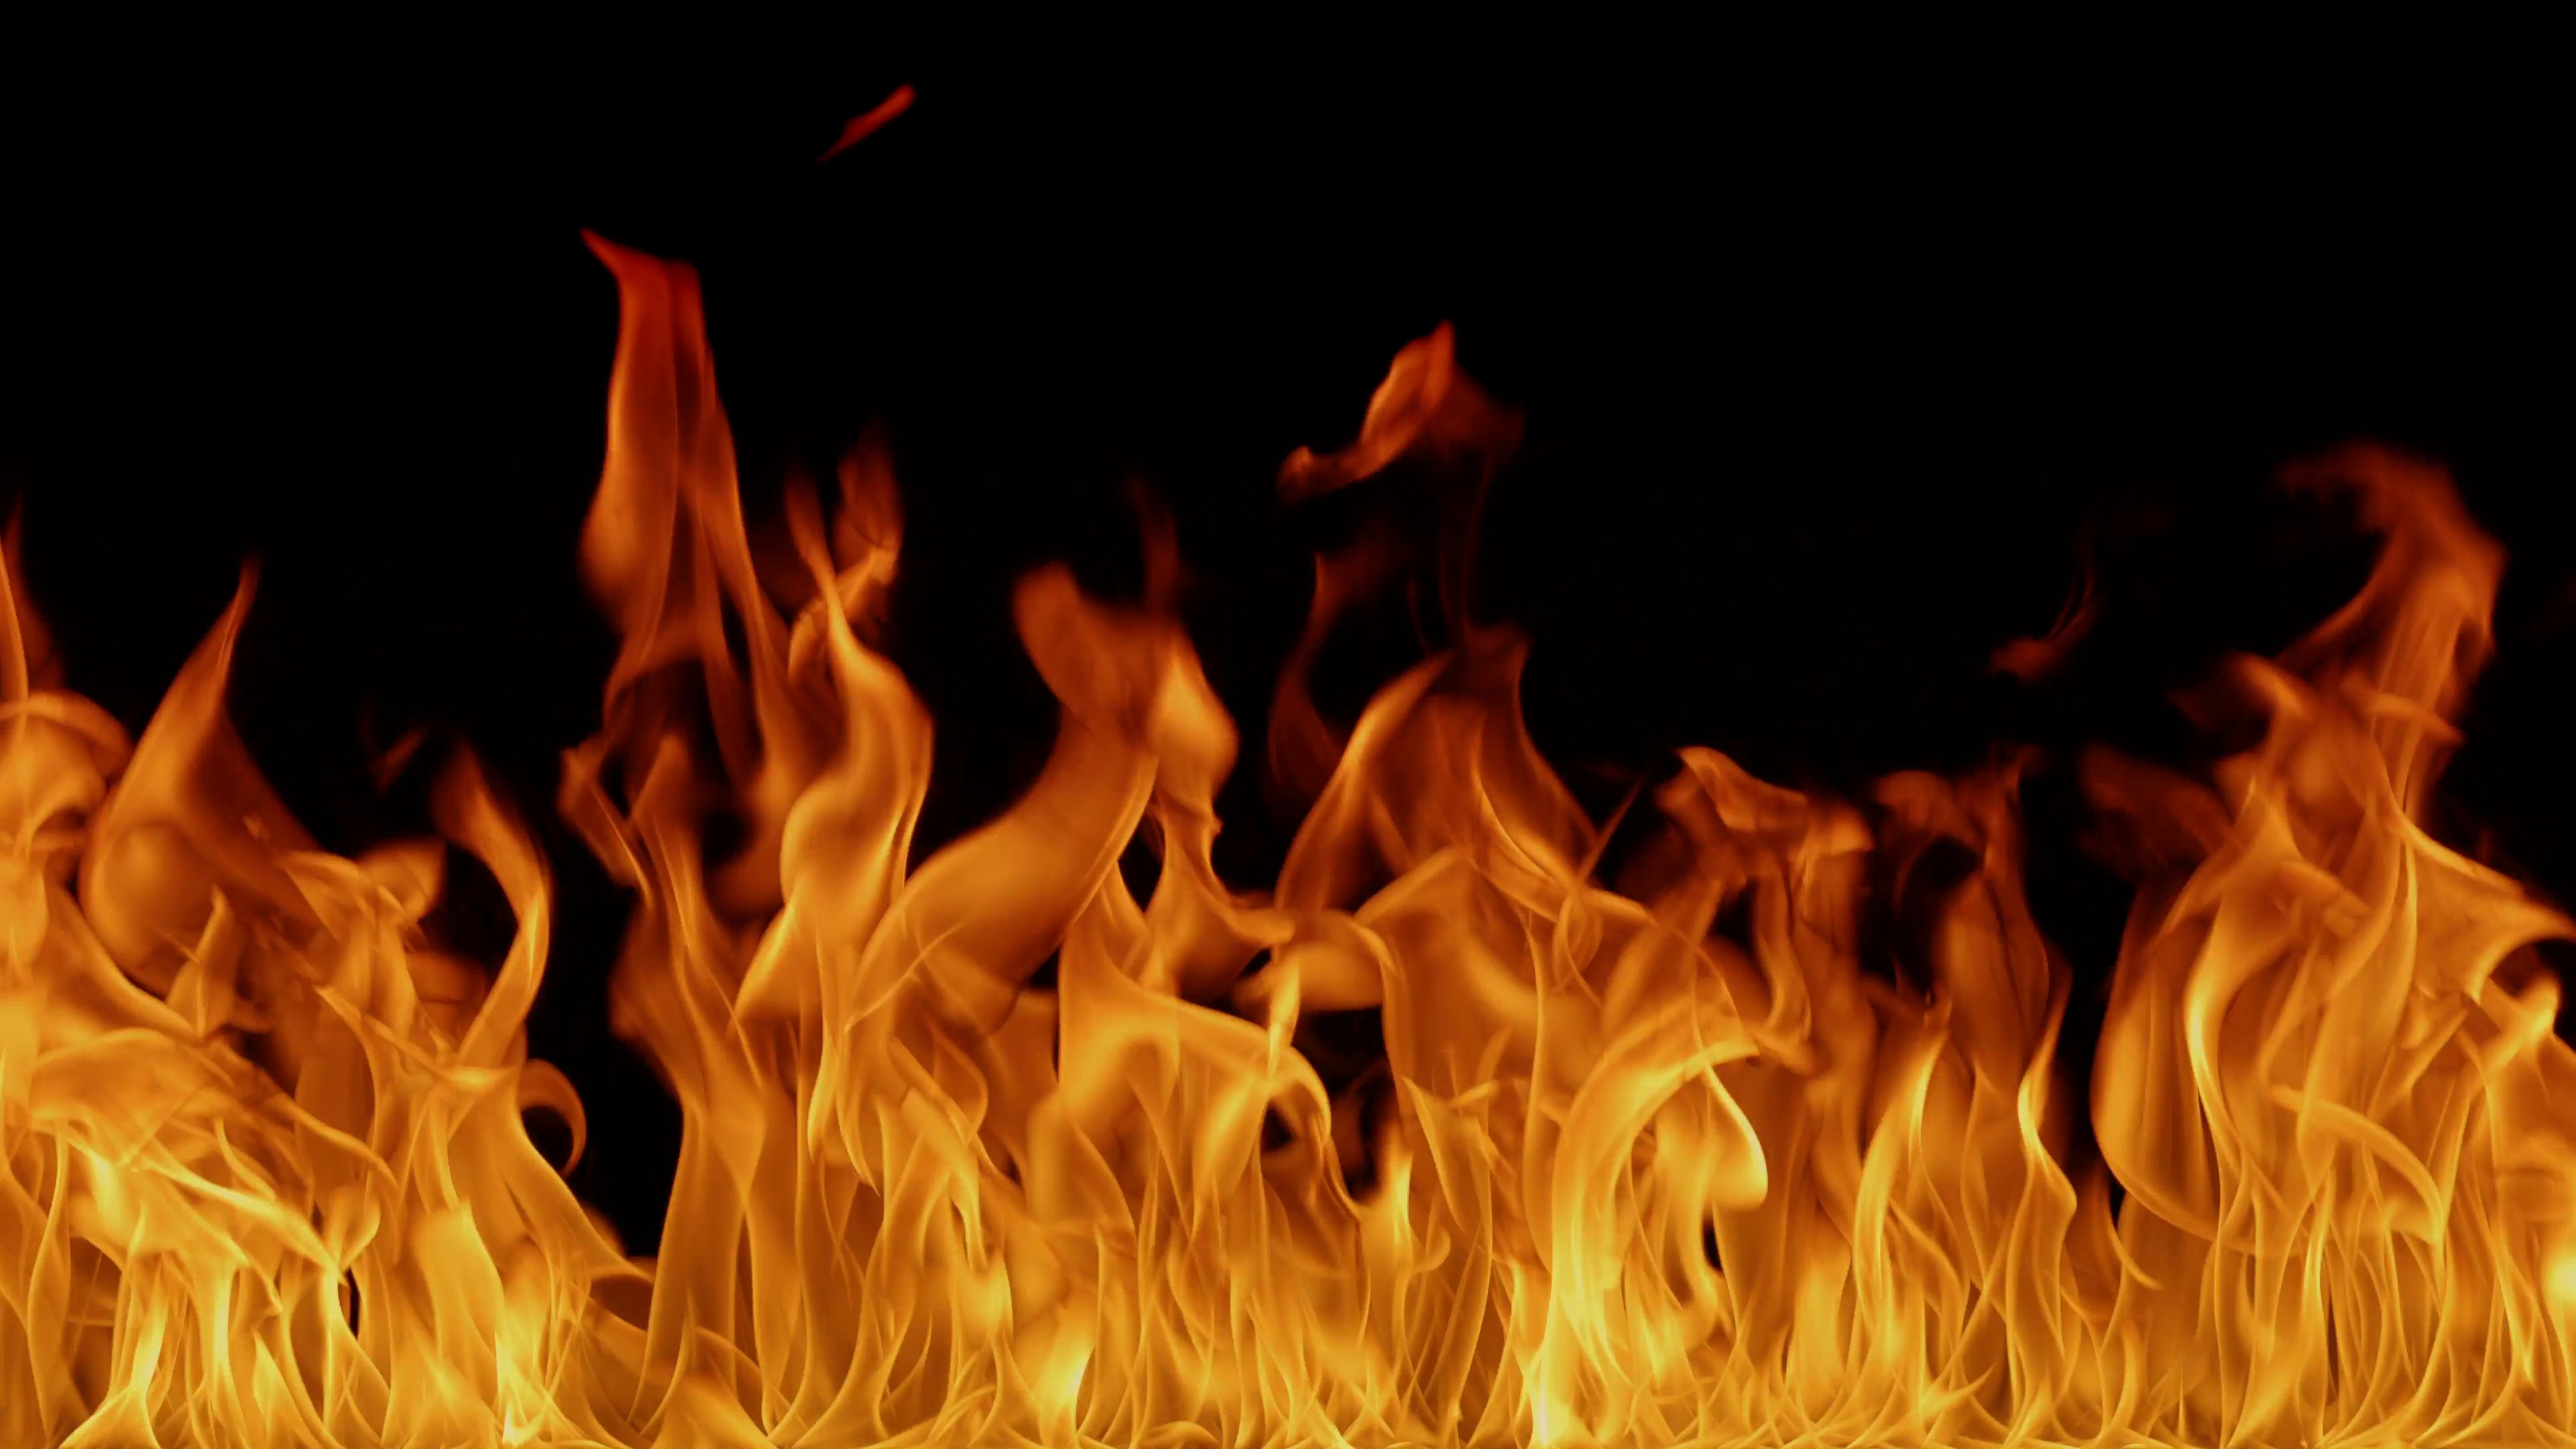 Fire Wallpapers Full Hd - 1080p Fire Background , HD Wallpaper & Backgrounds